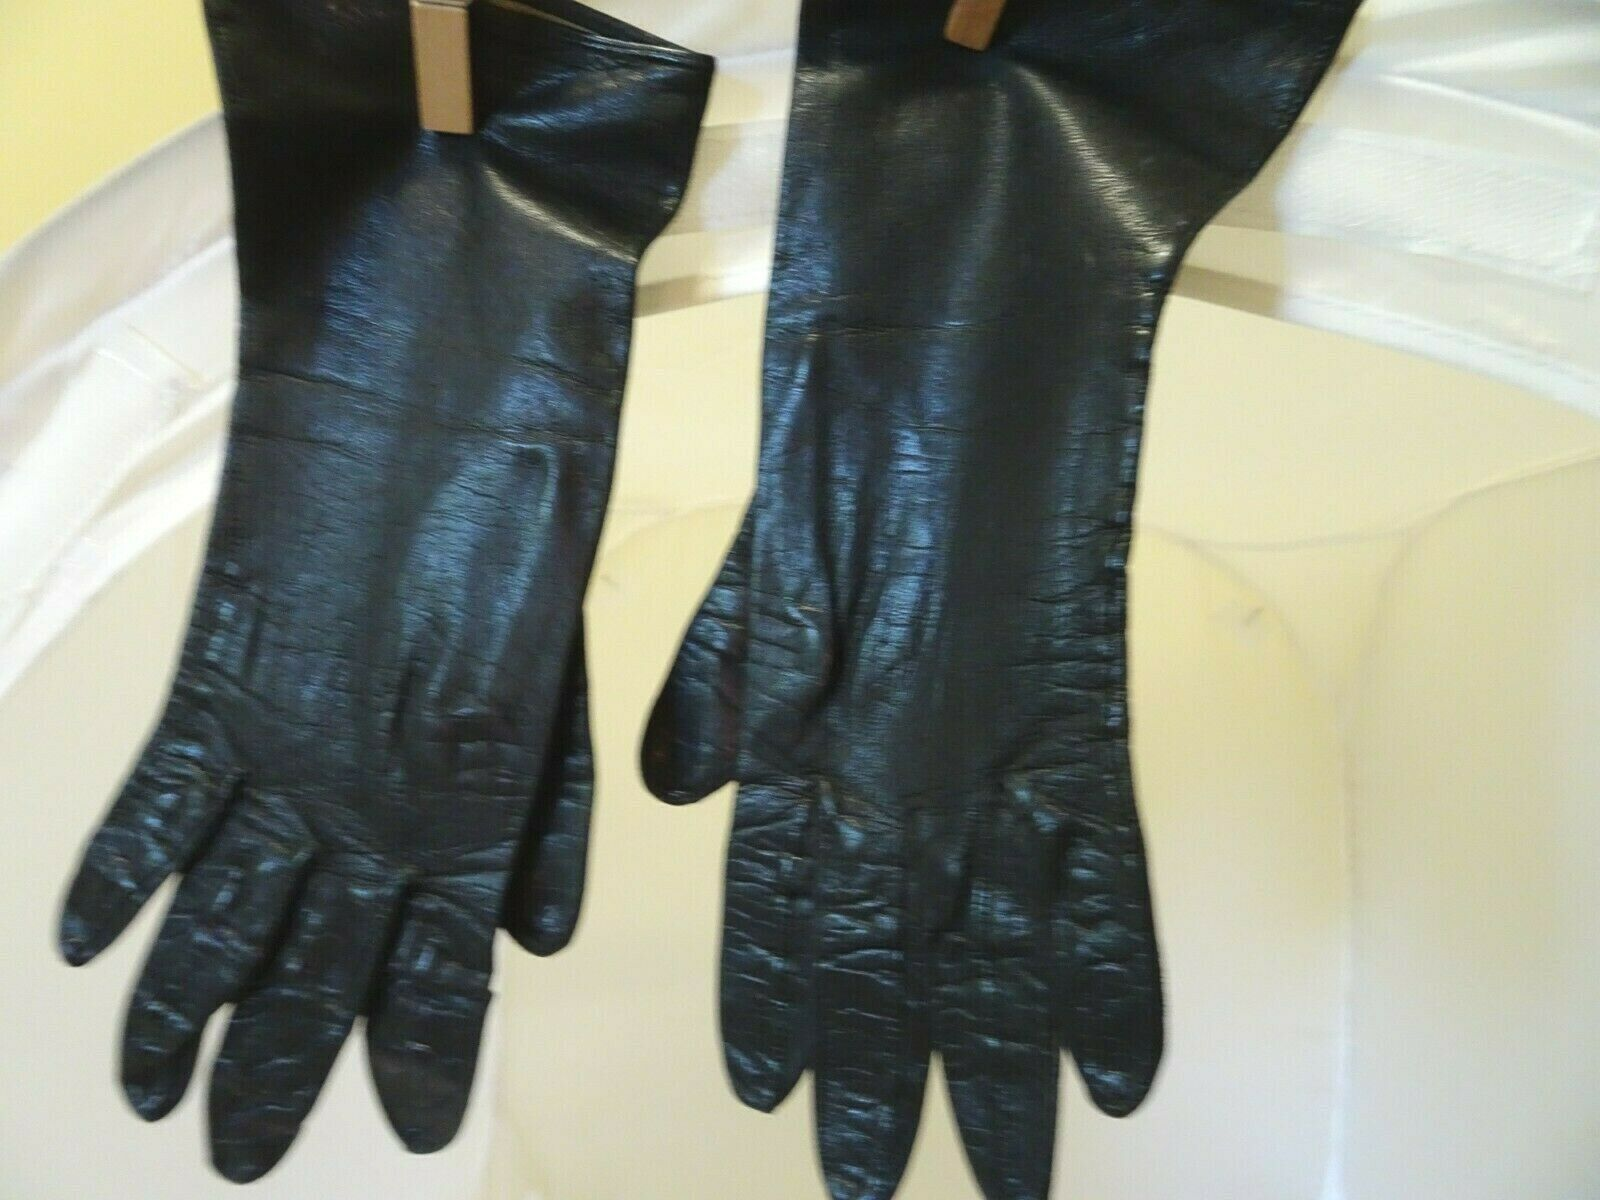 Vintage Dayne Taylor Black Leather Women's Hand Gloves 6?- Made In Italy